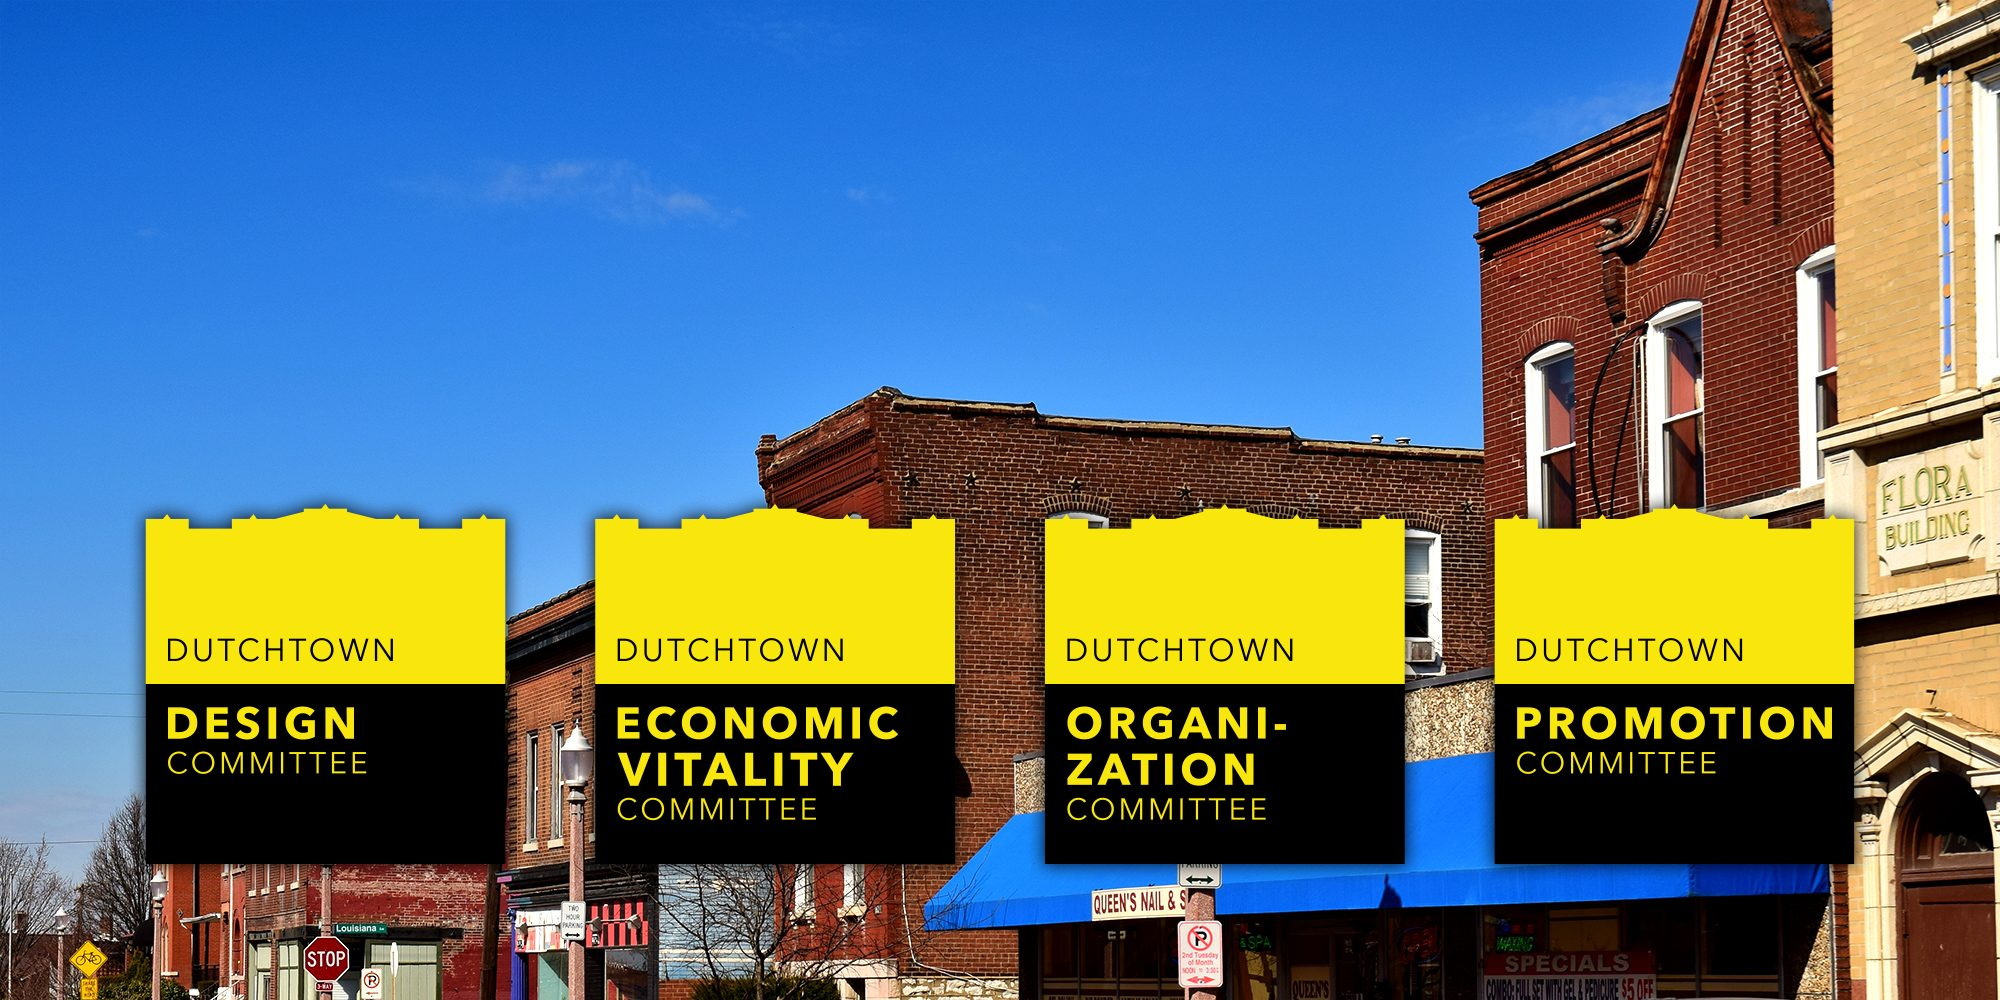 The Dutchtown Committees: Design, Economic Vitality, Organization, and Promotion.